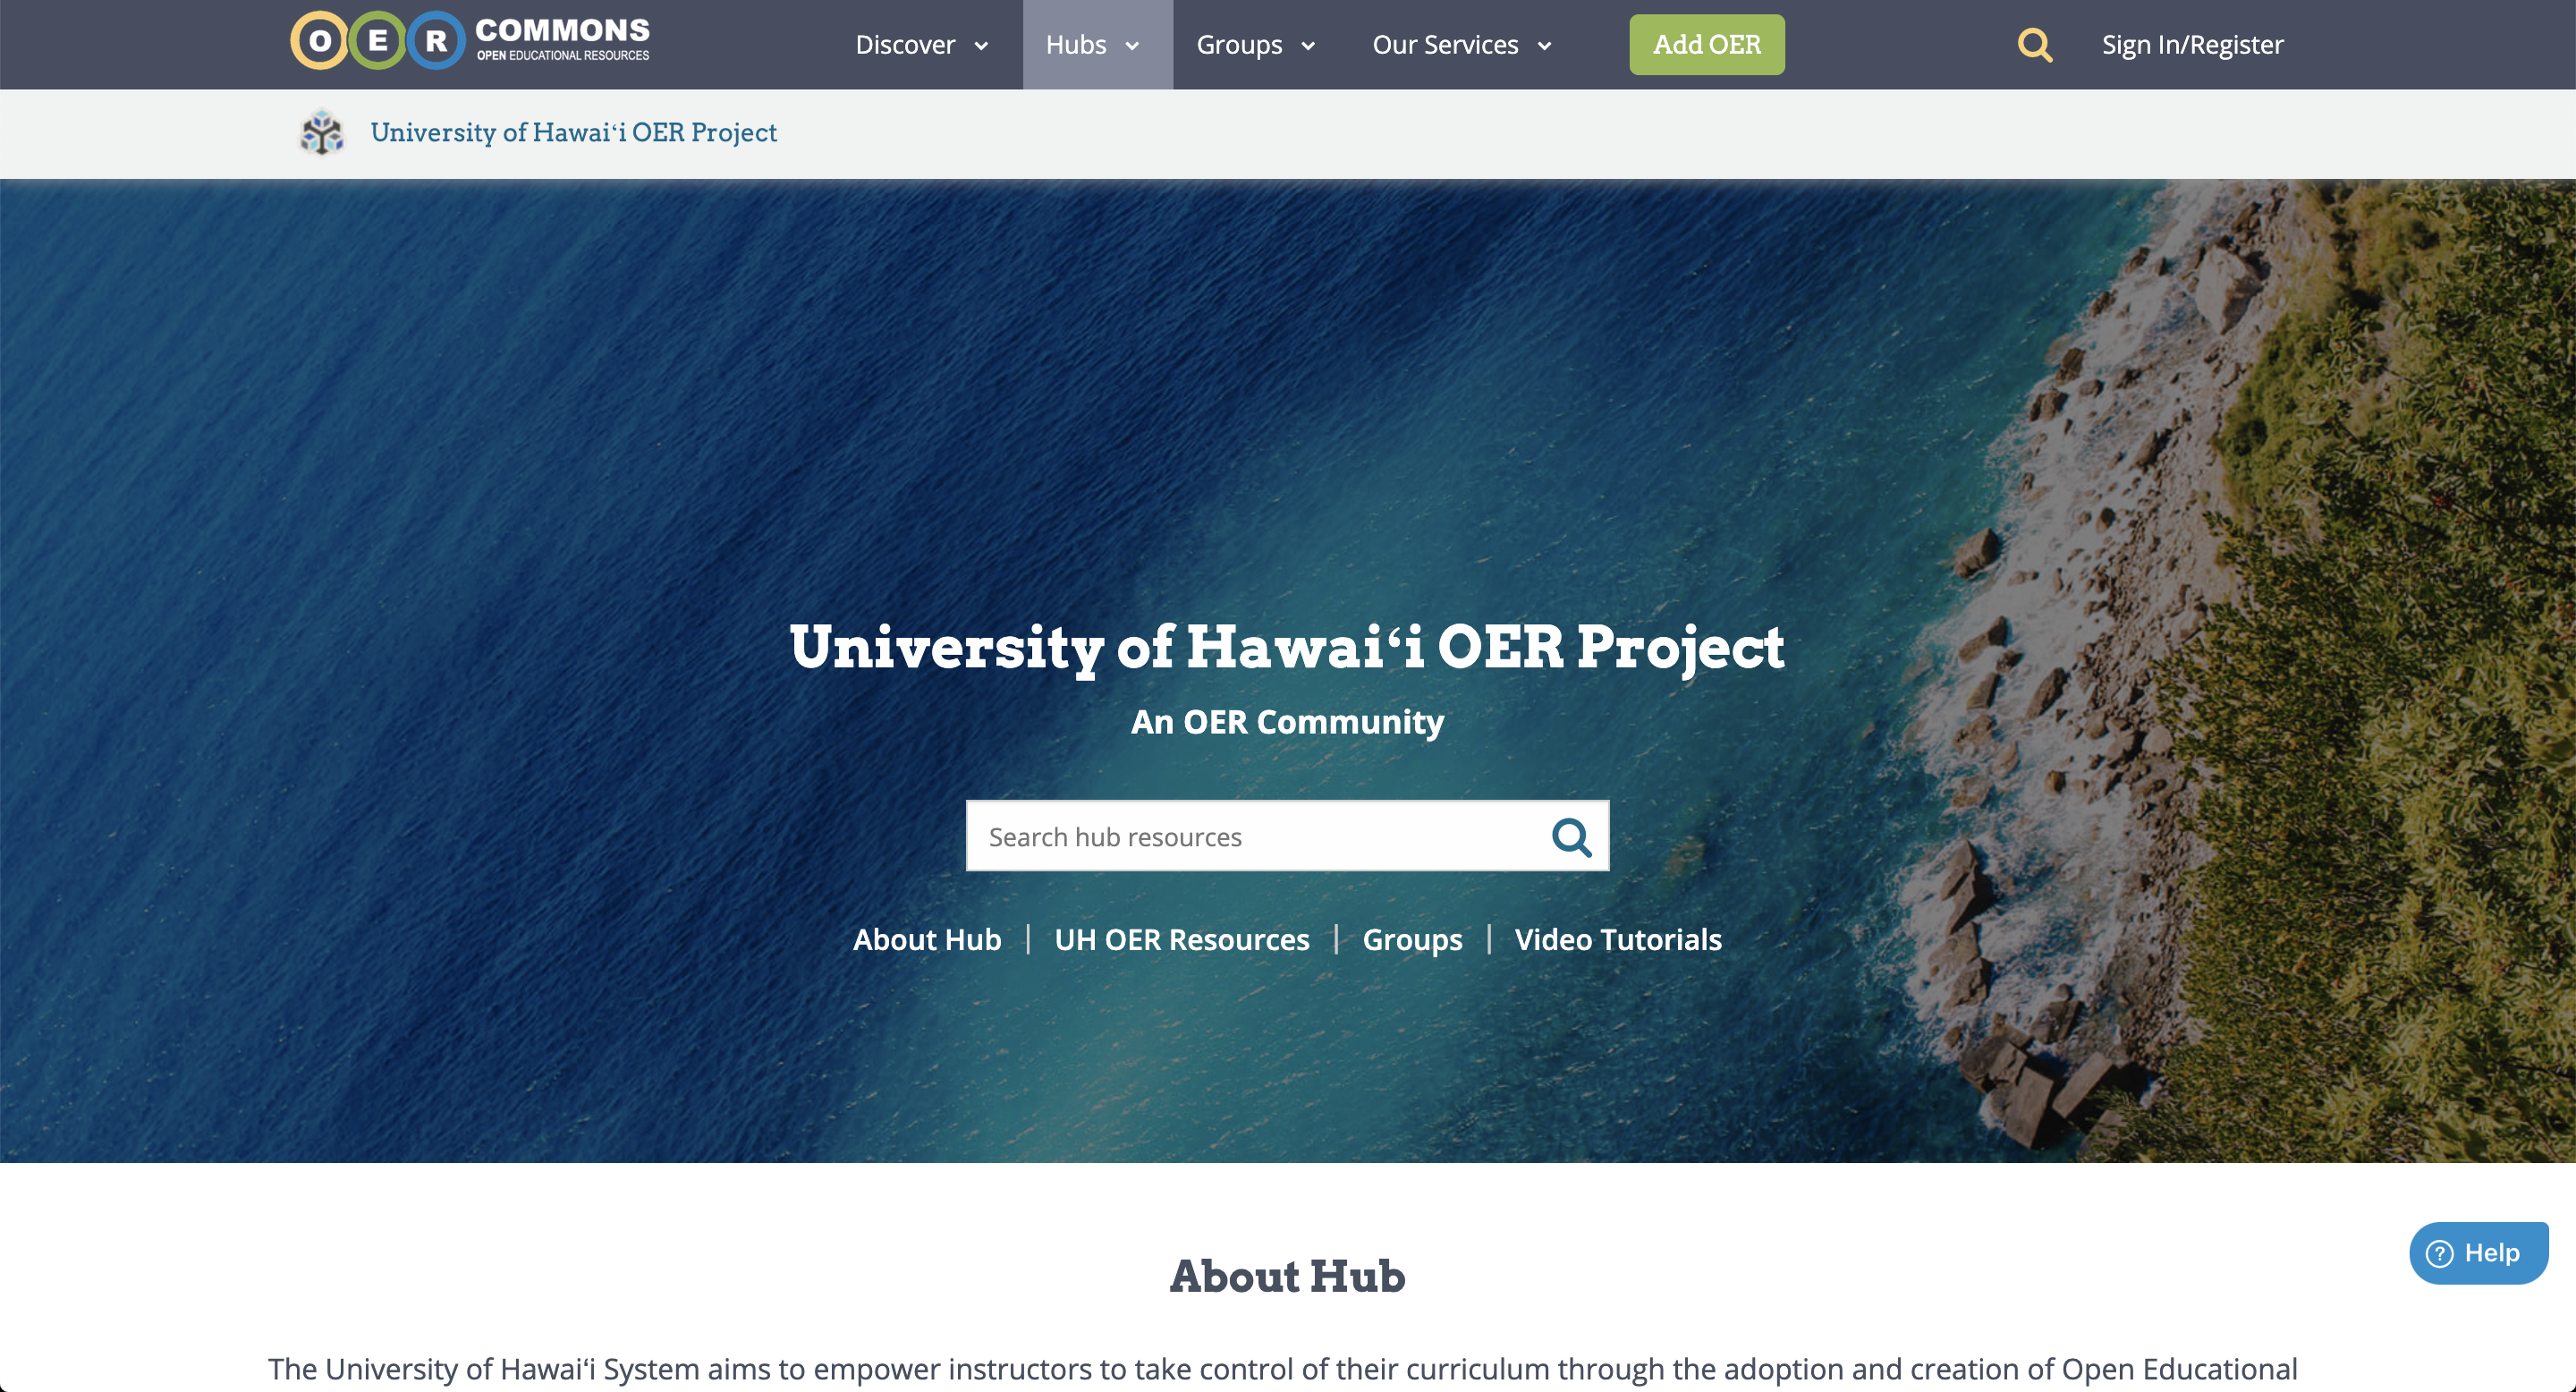 UH OER Hub on OER Commons